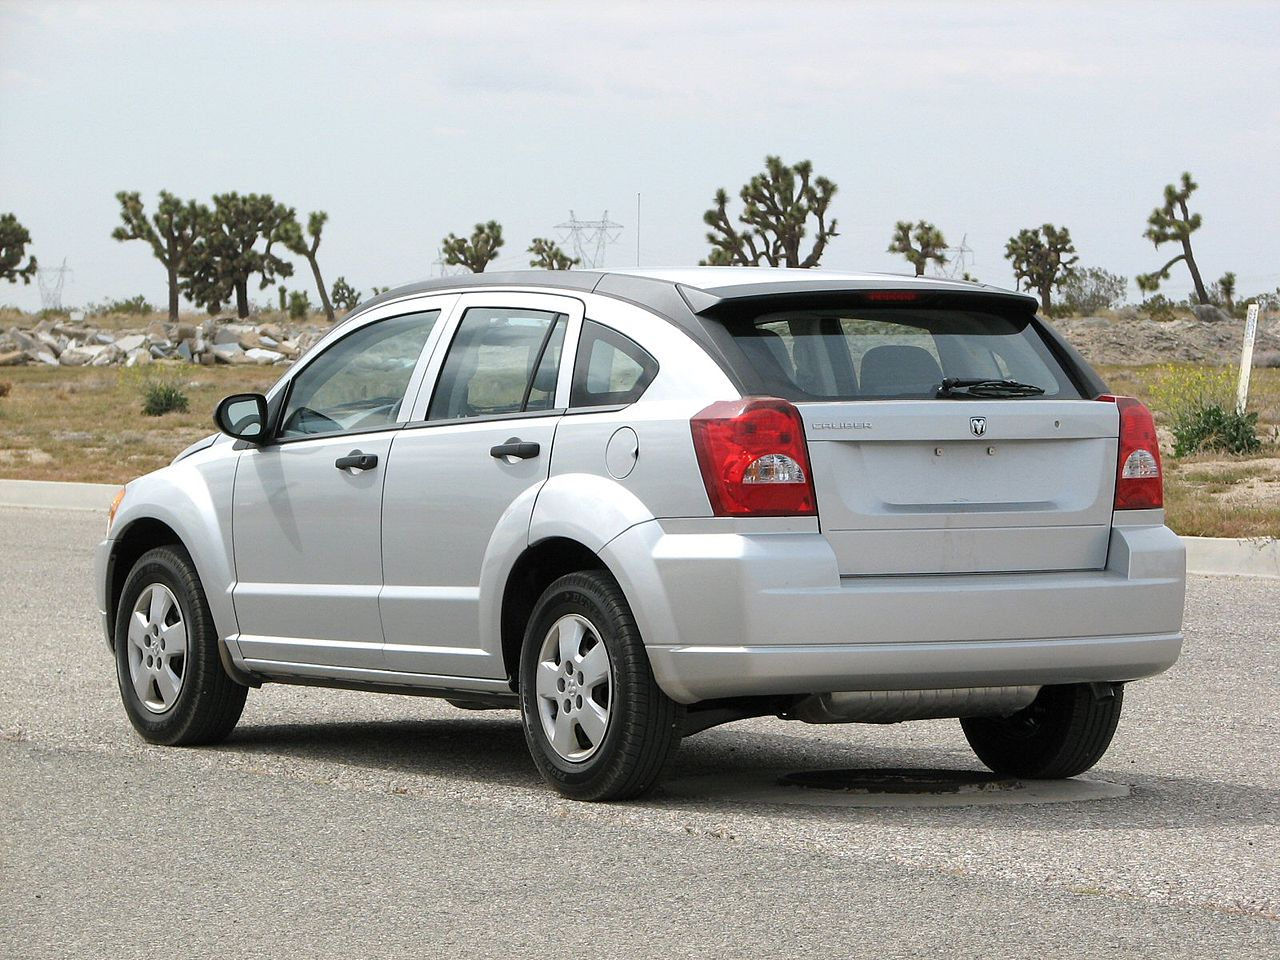 file 2007 dodge caliber hatchback nhtsa wikimedia commons. Black Bedroom Furniture Sets. Home Design Ideas